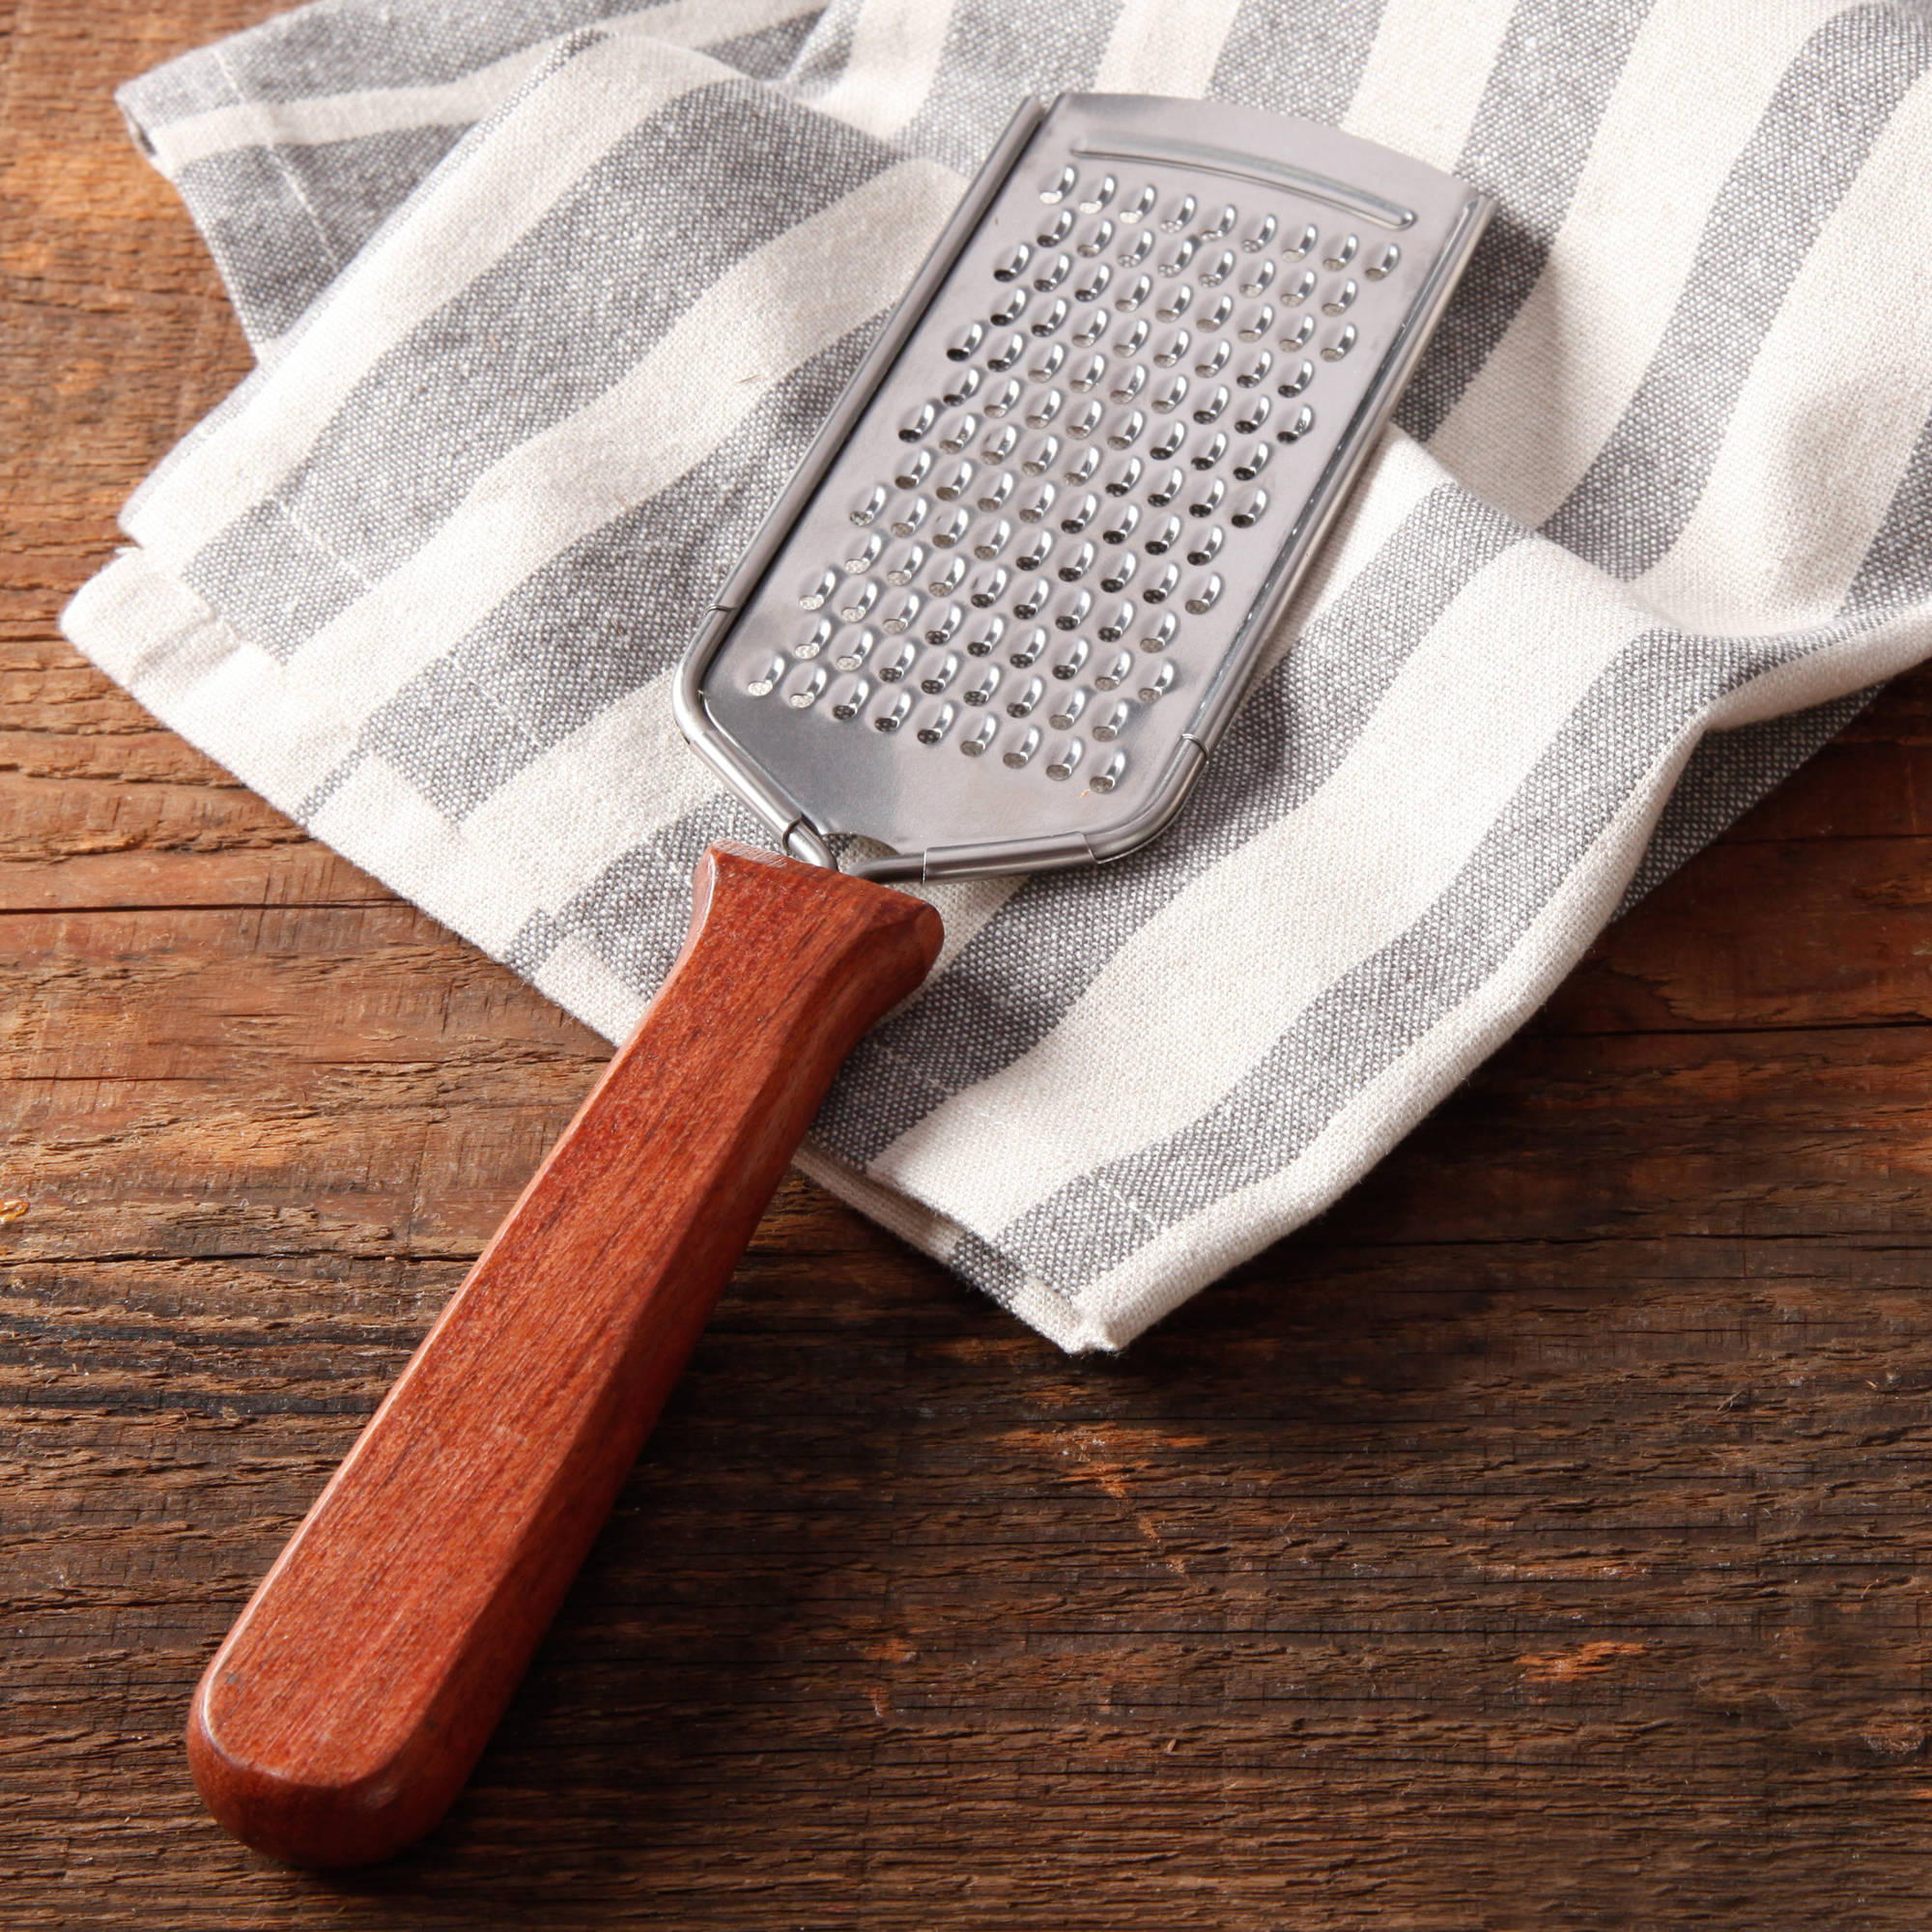 The Pioneer Woman Cowboy Rustic Rosewood Handle Grater